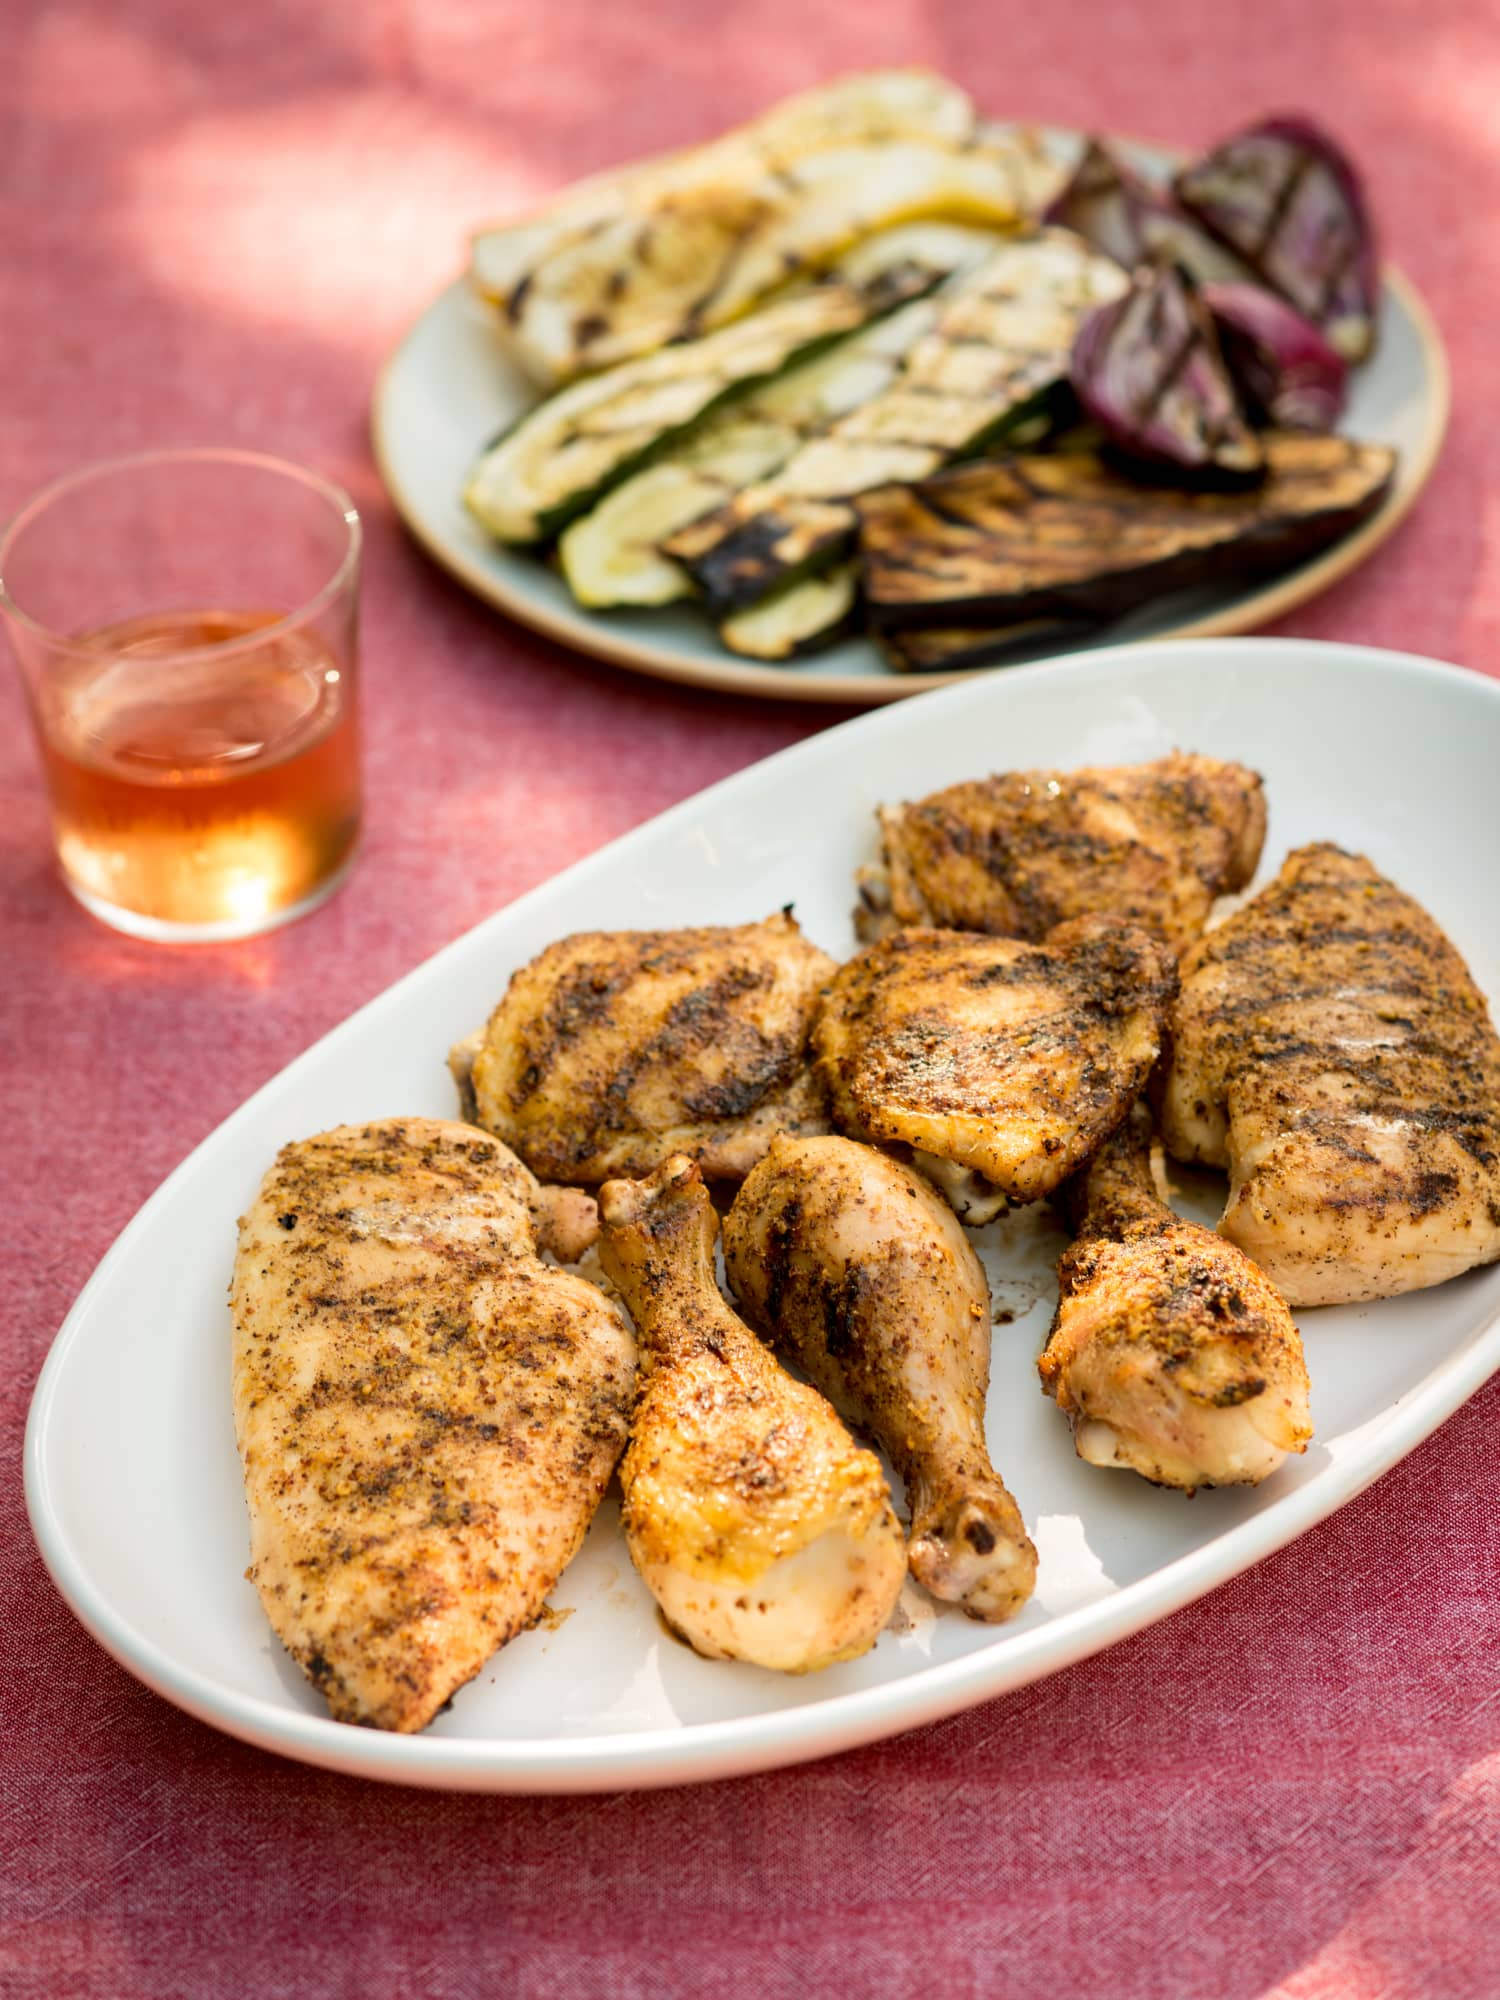 A Foolproof Method for Perfect Grilled Chicken Every Time